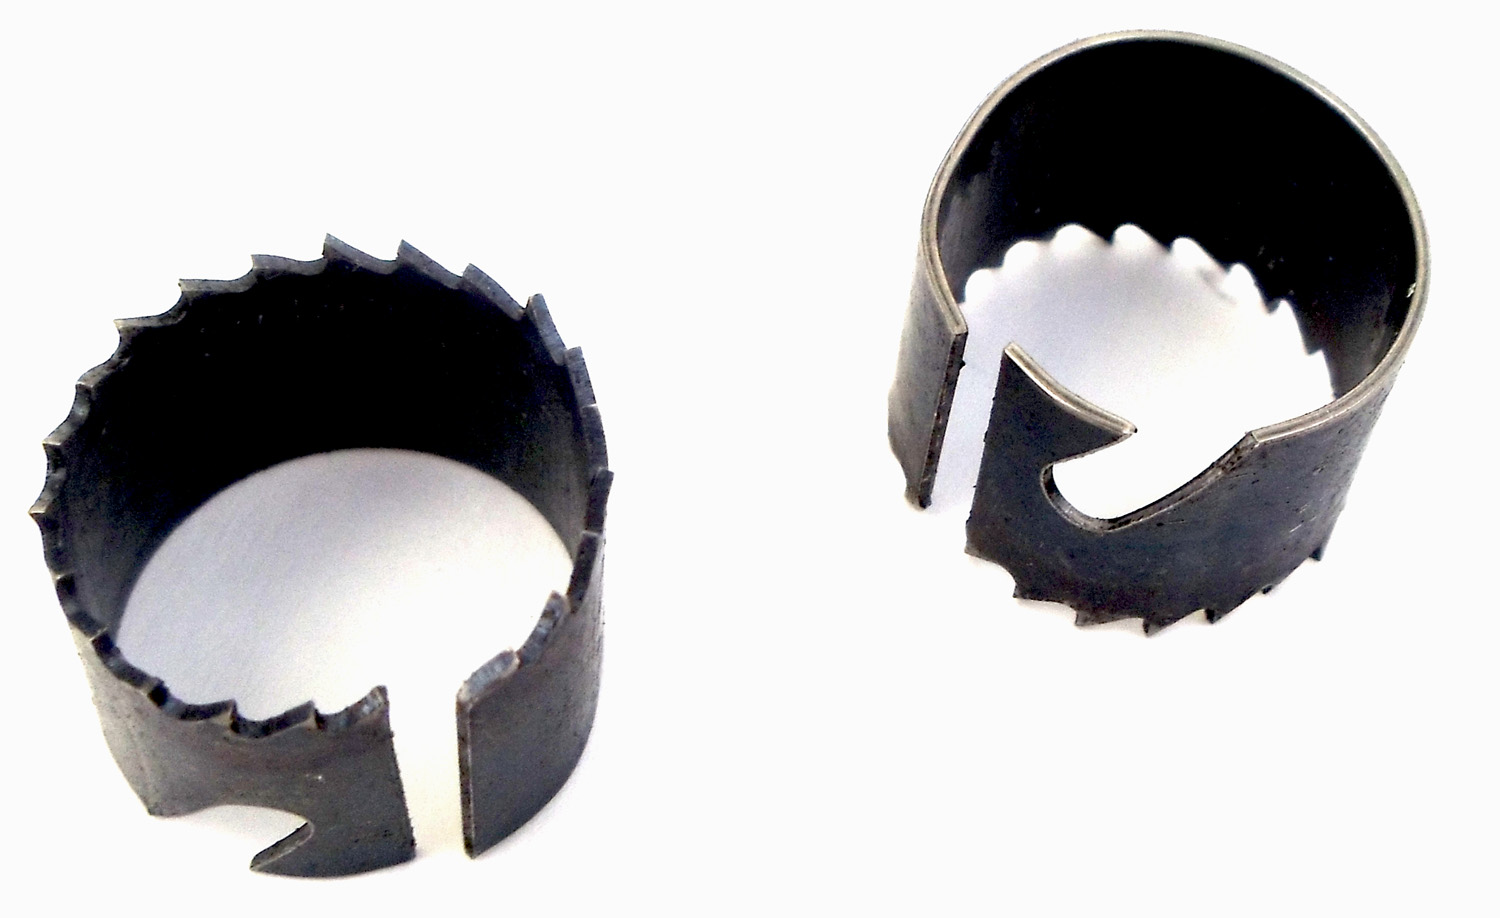 """HSBLADE - 3/4"""" REPLACEMENT HOLE SAW BLADE FOR HS1 (2 PACK)"""